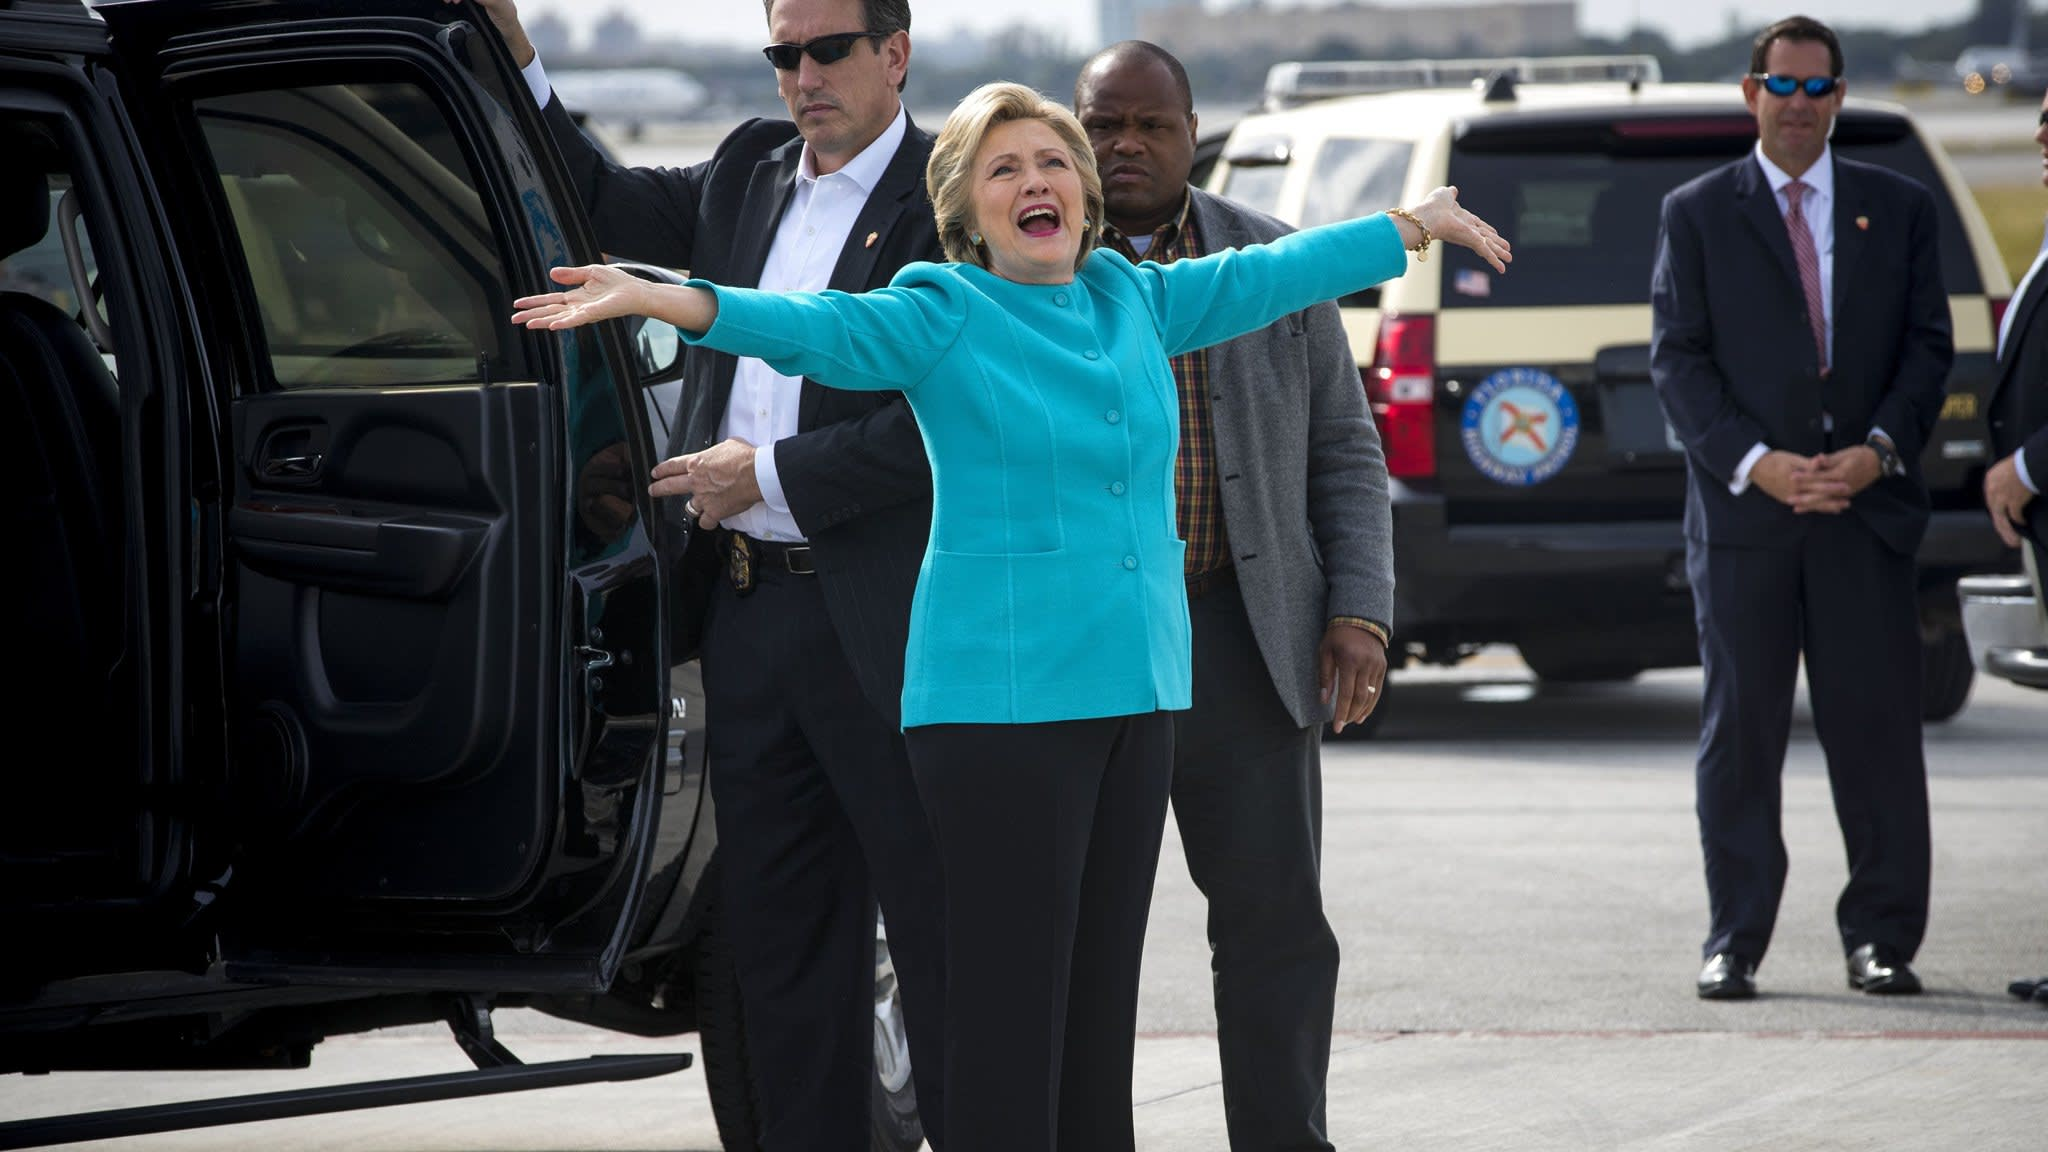 image when Chasing Hillary: on the road with a cloistered, would-be president